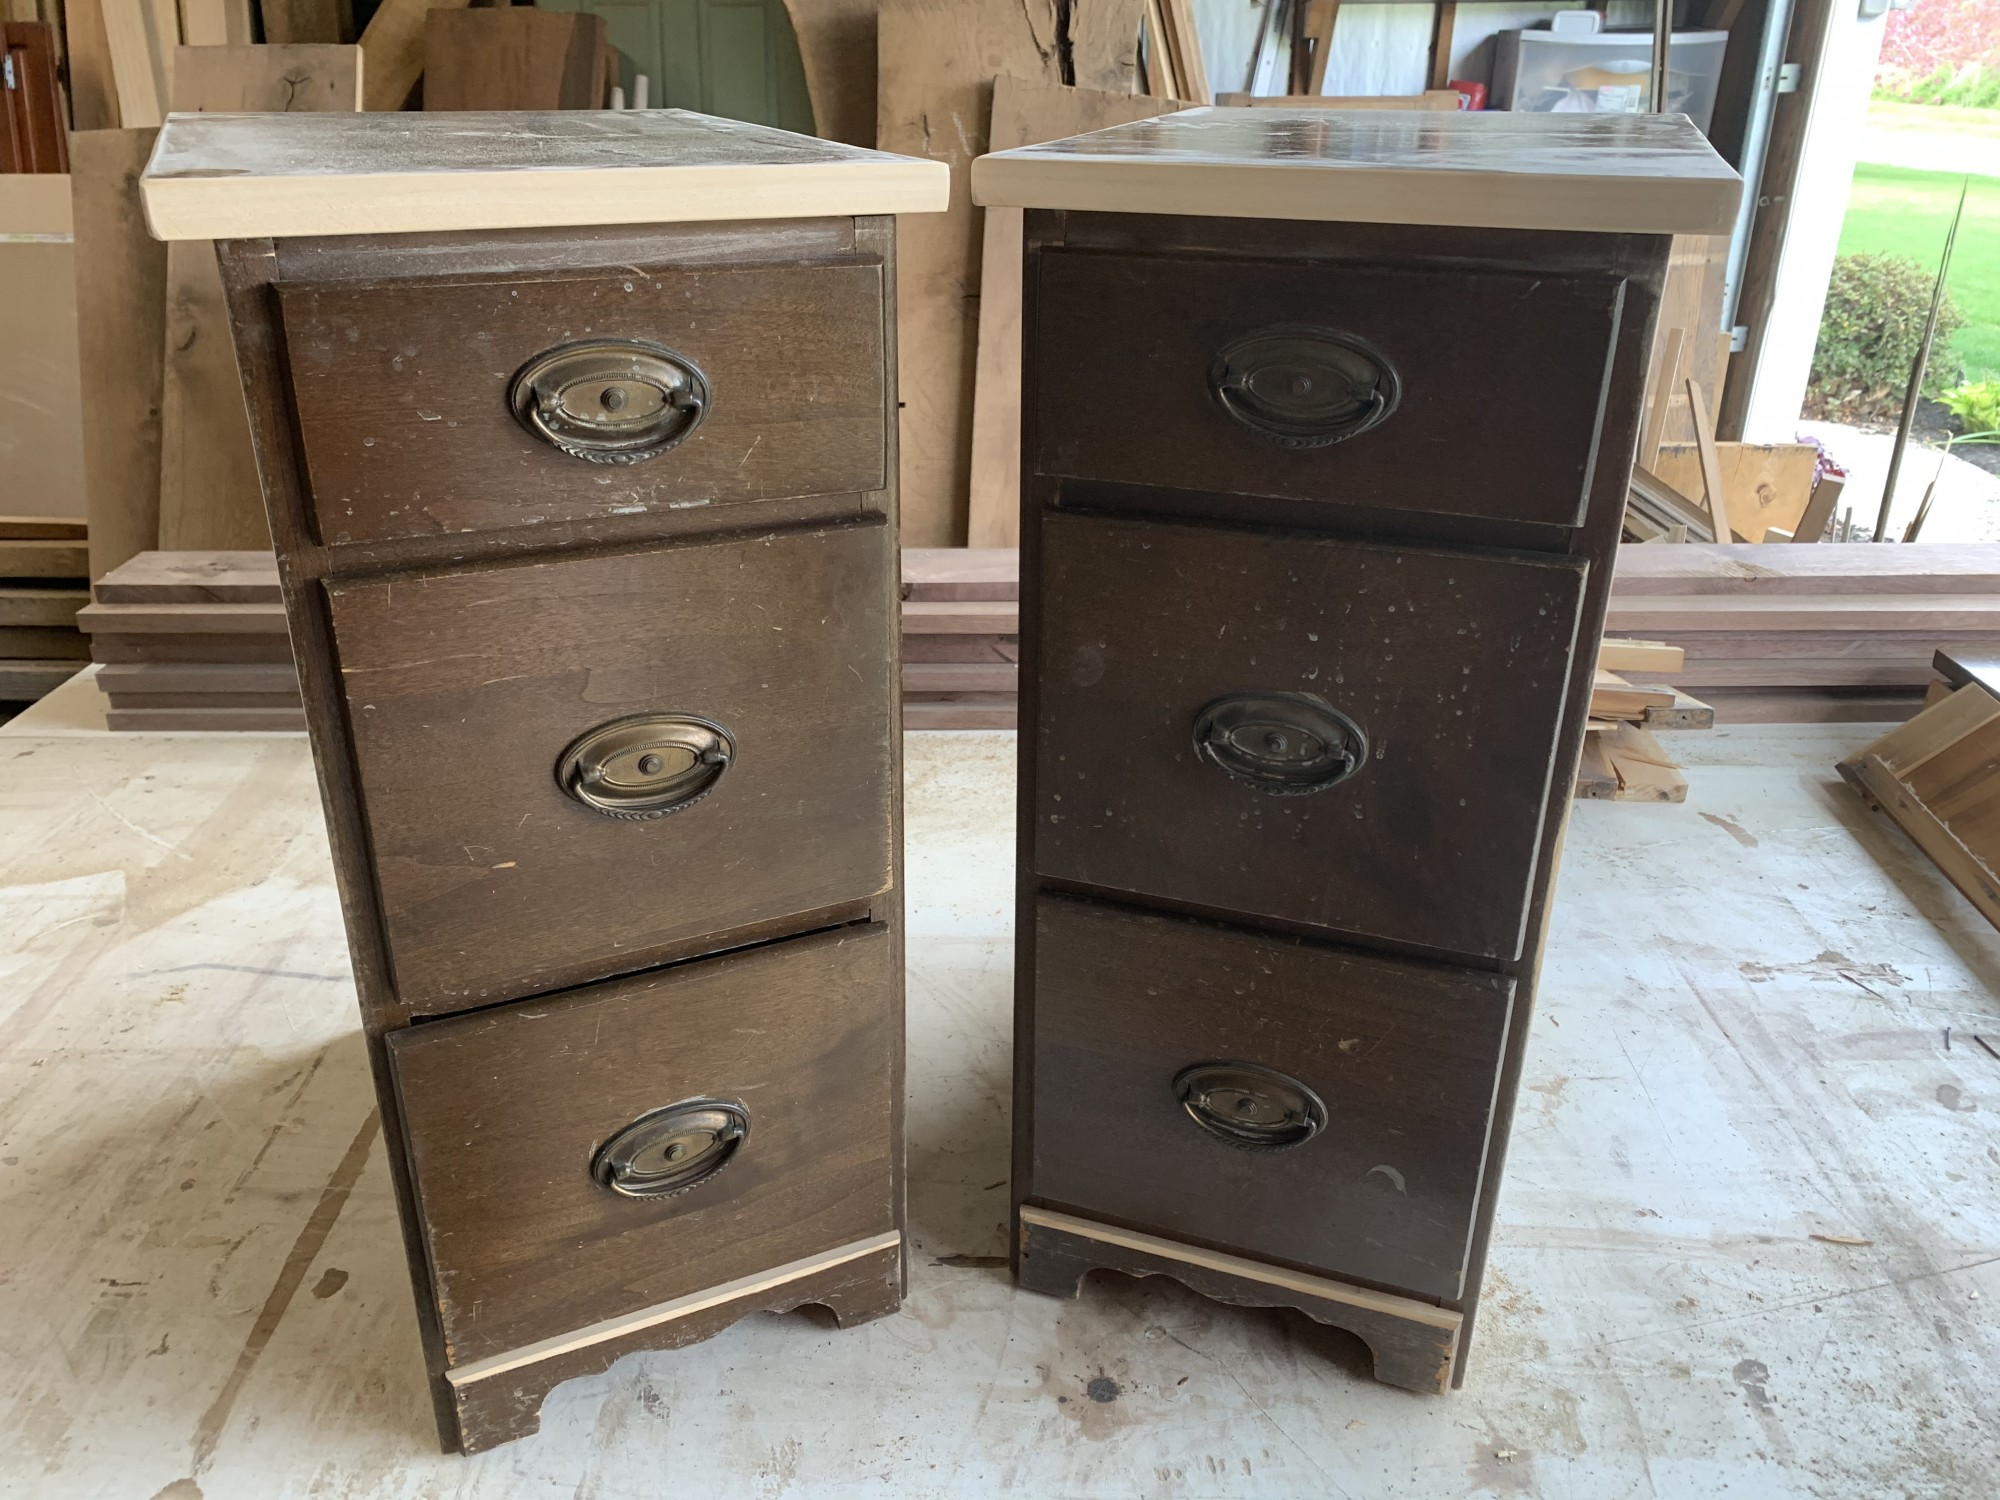 Nightstands from the sides of an old kneehole desk